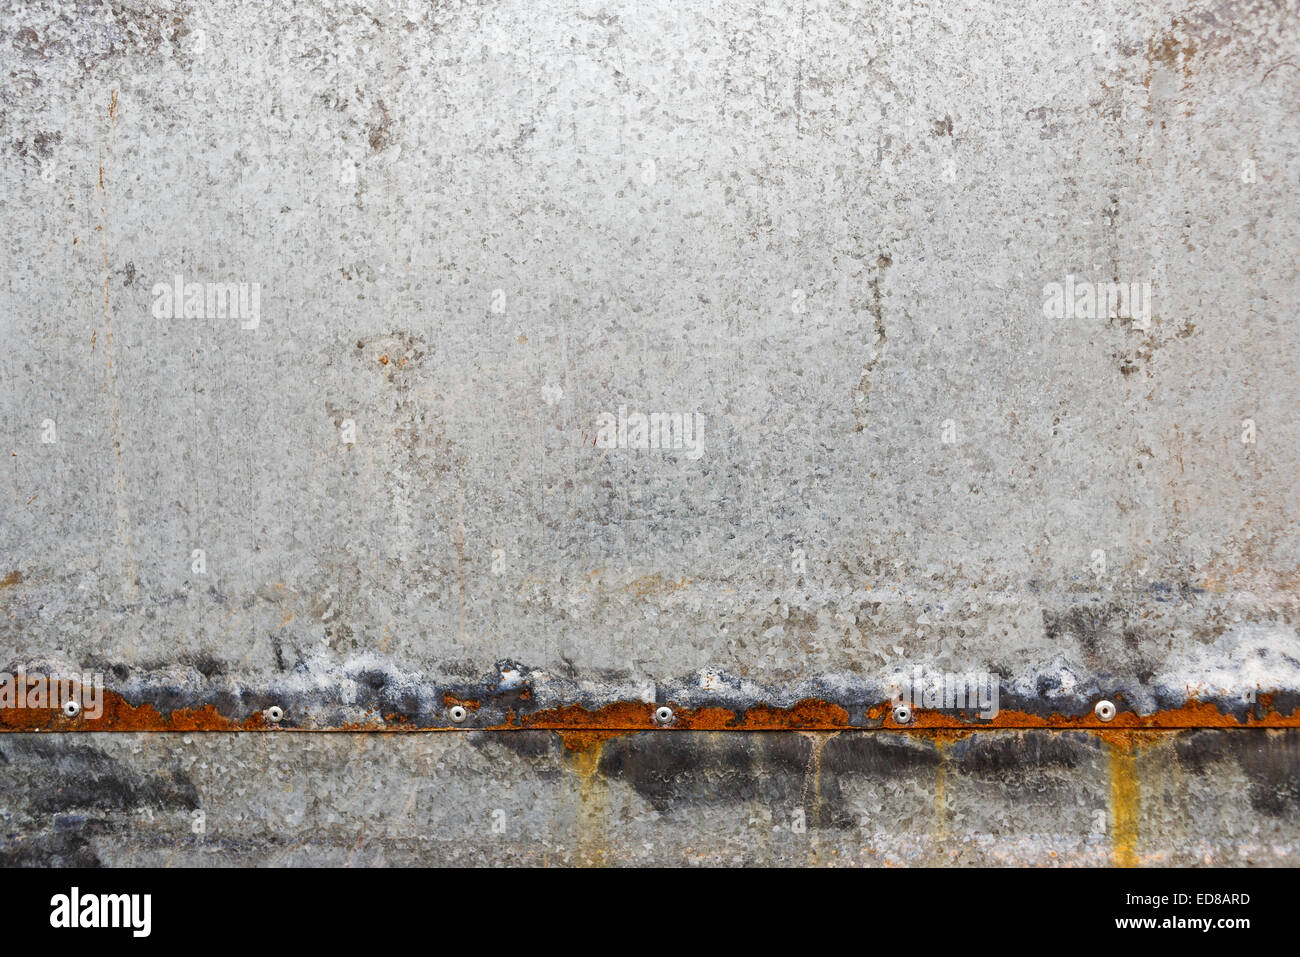 Zinc coated galvanized steel metal sheet plate pattern texture with rusty edges. - Stock Image